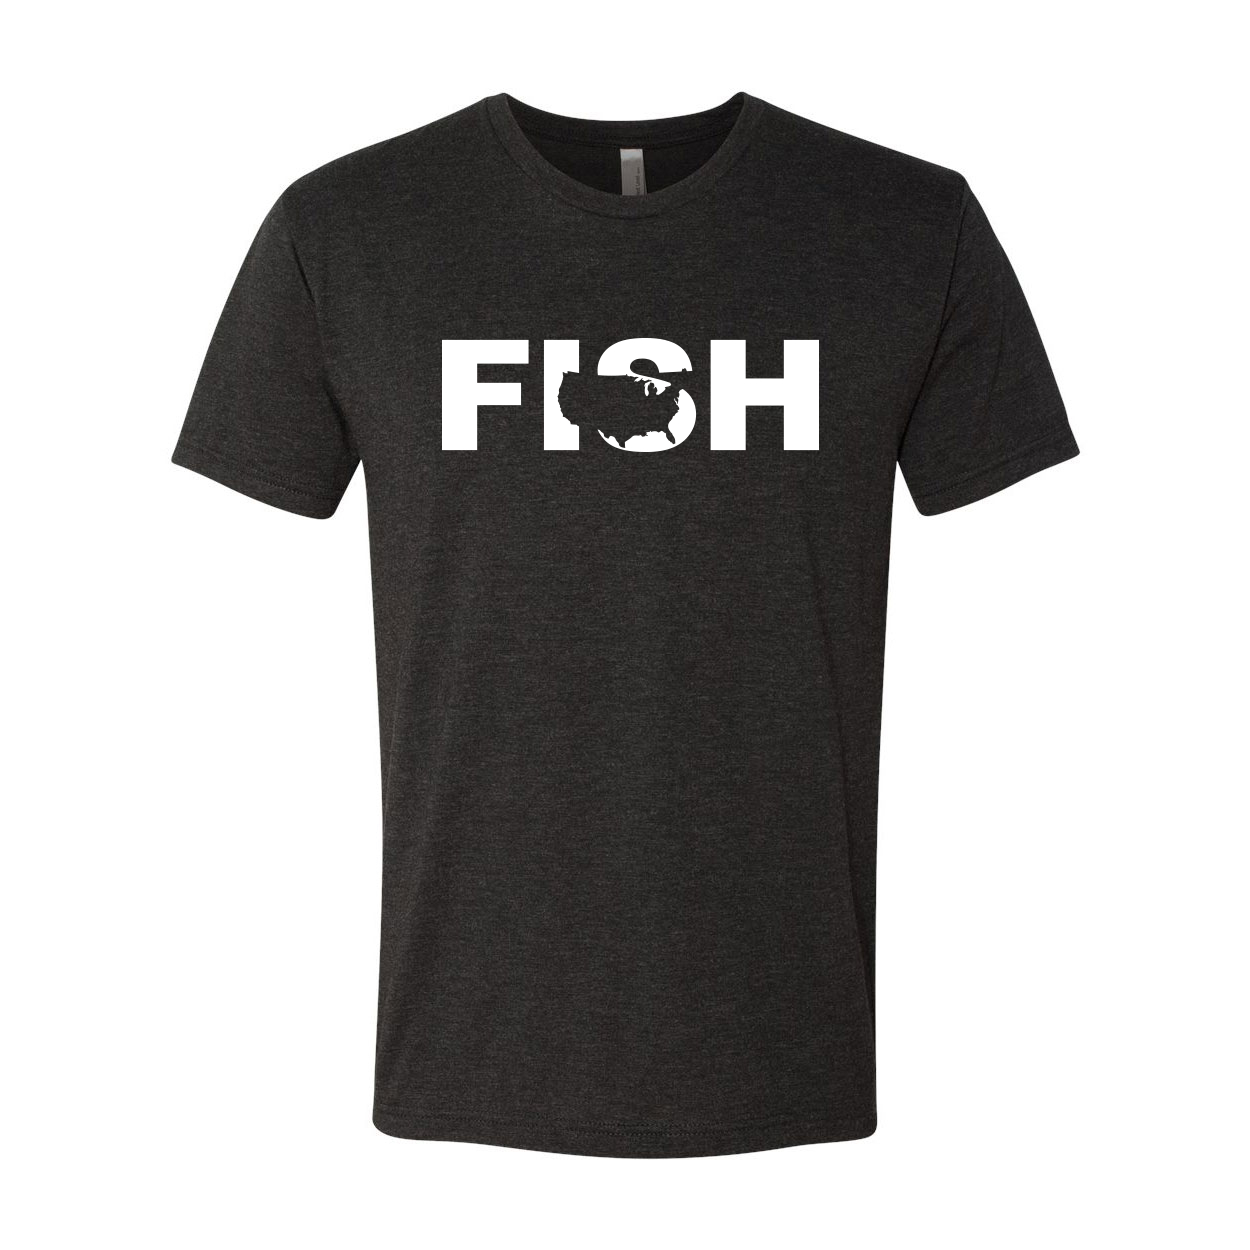 Fish United States Classic Premium Tri-Blend T-Shirt Vintage Black (White Logo)